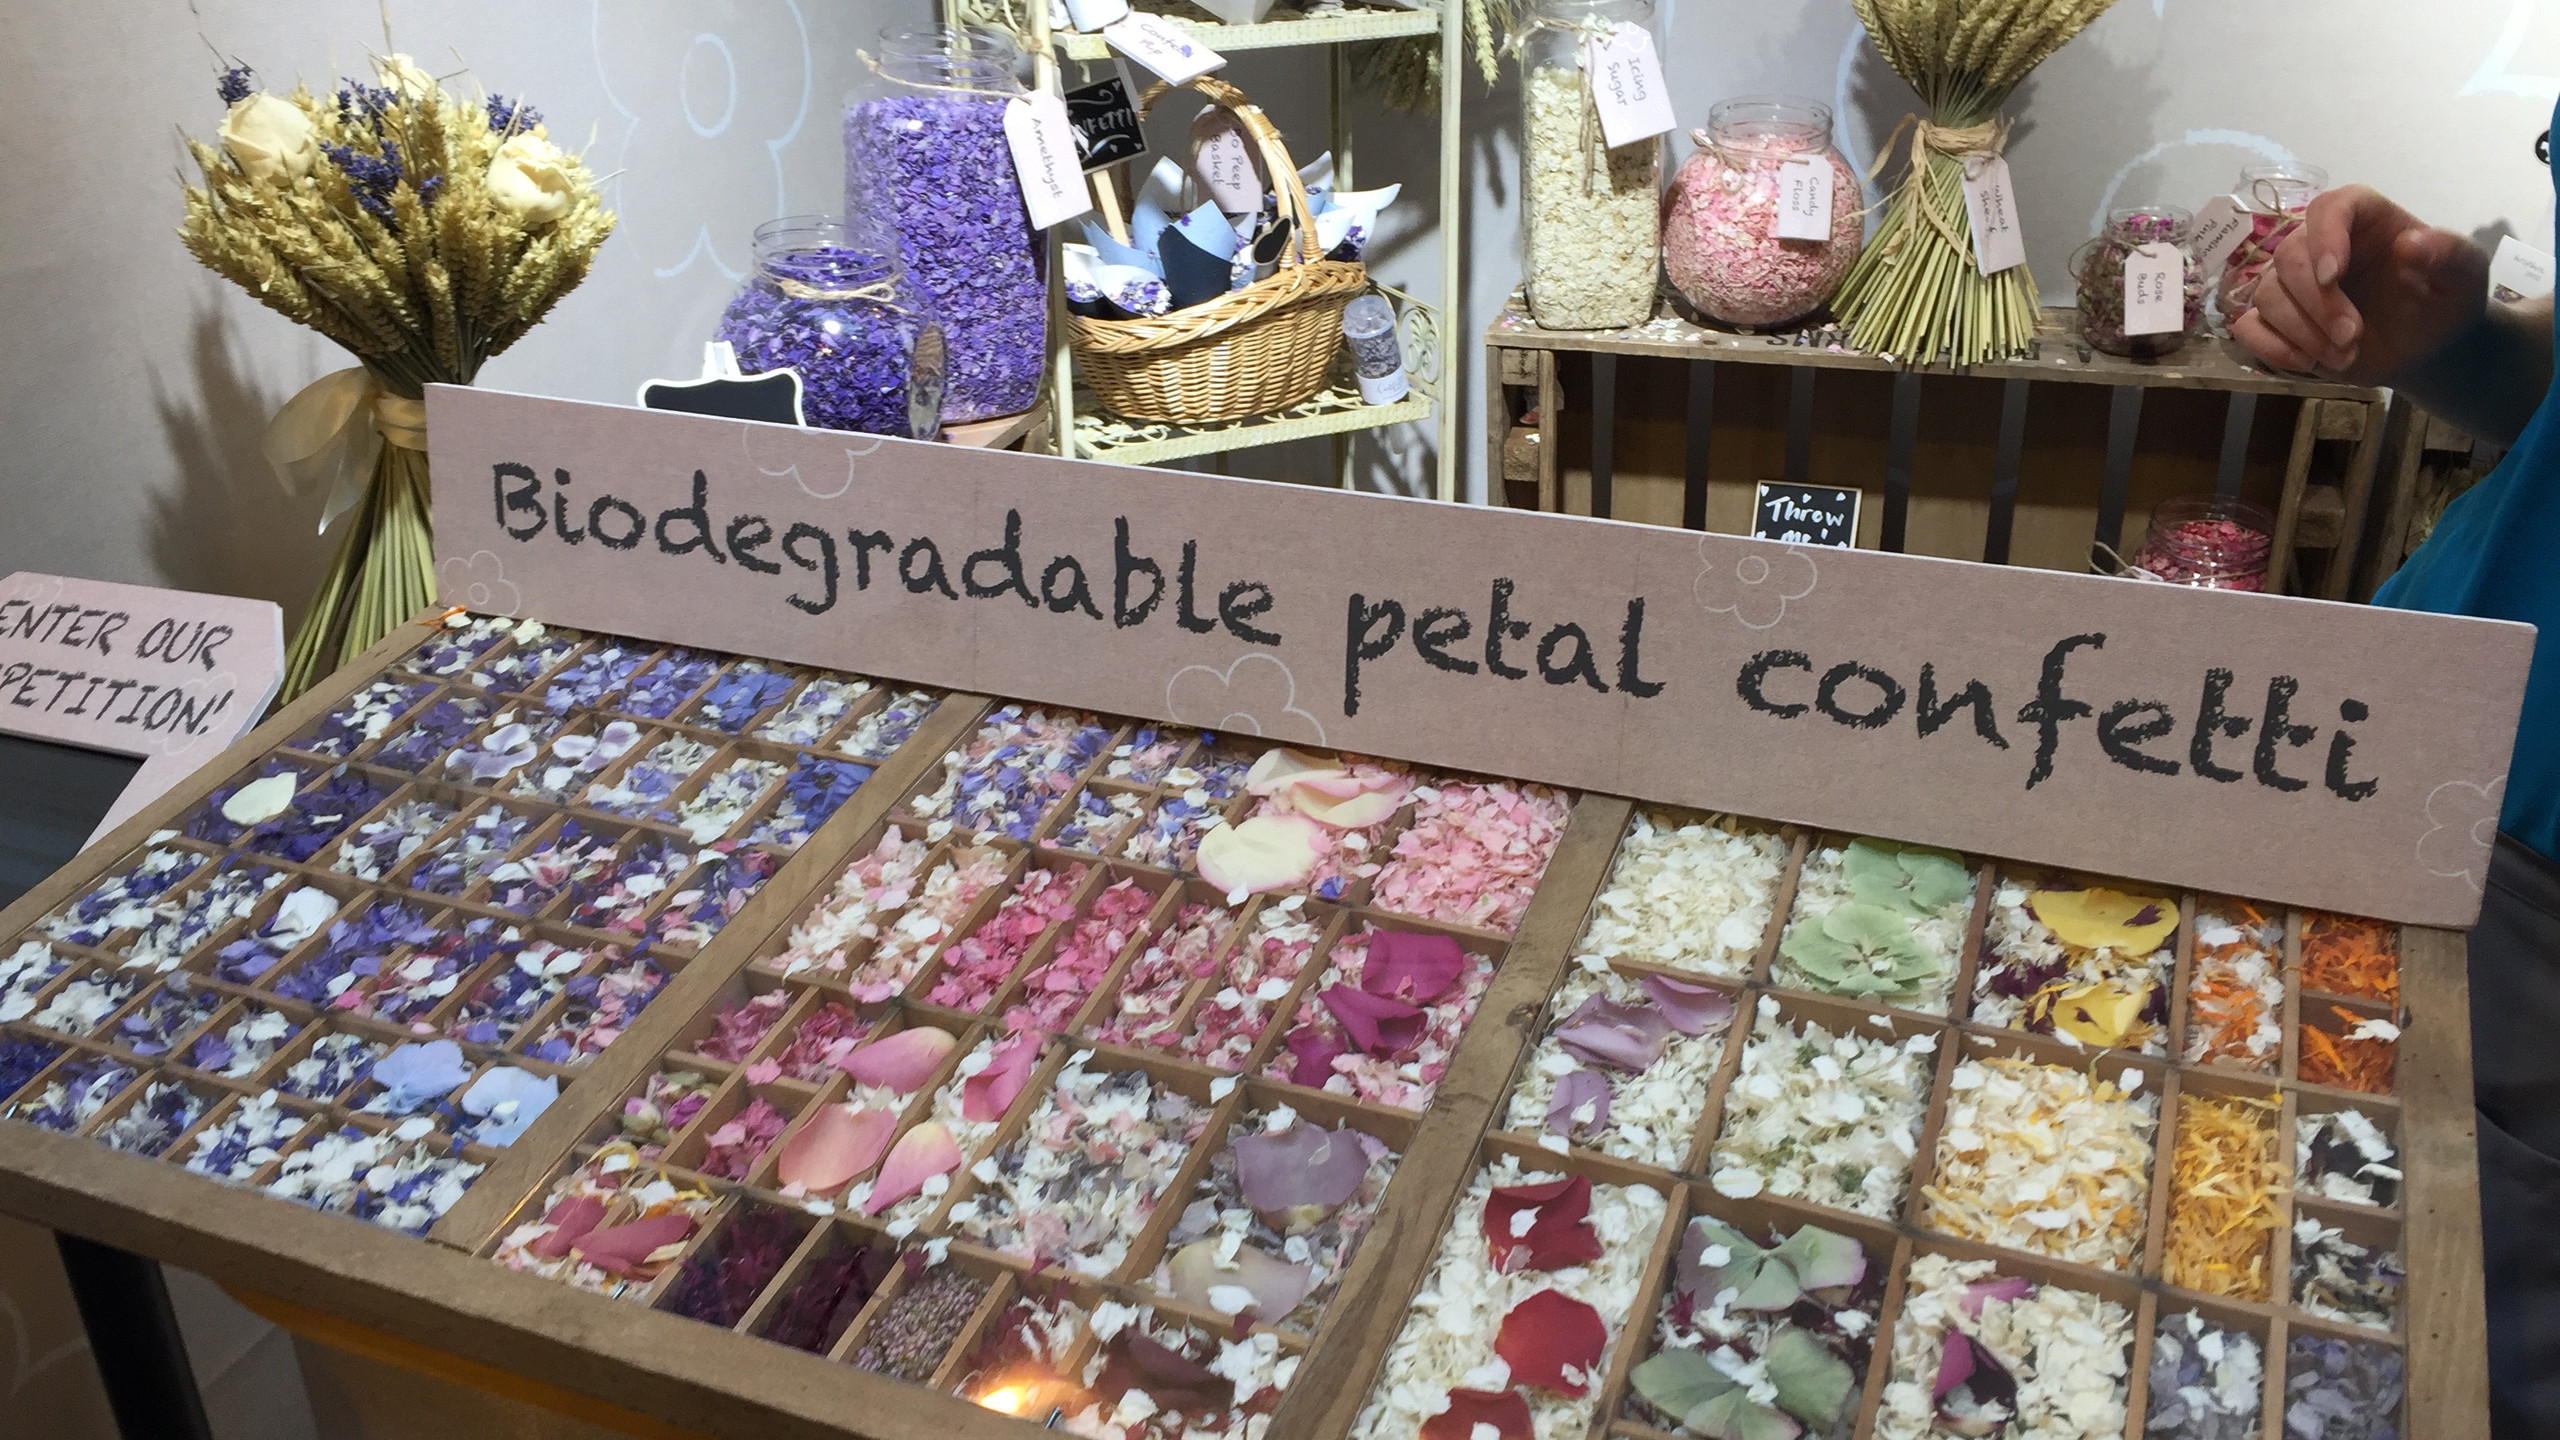 The smell was amazing from this biodegradable natural petal confetti from www.shopshirepetals.com